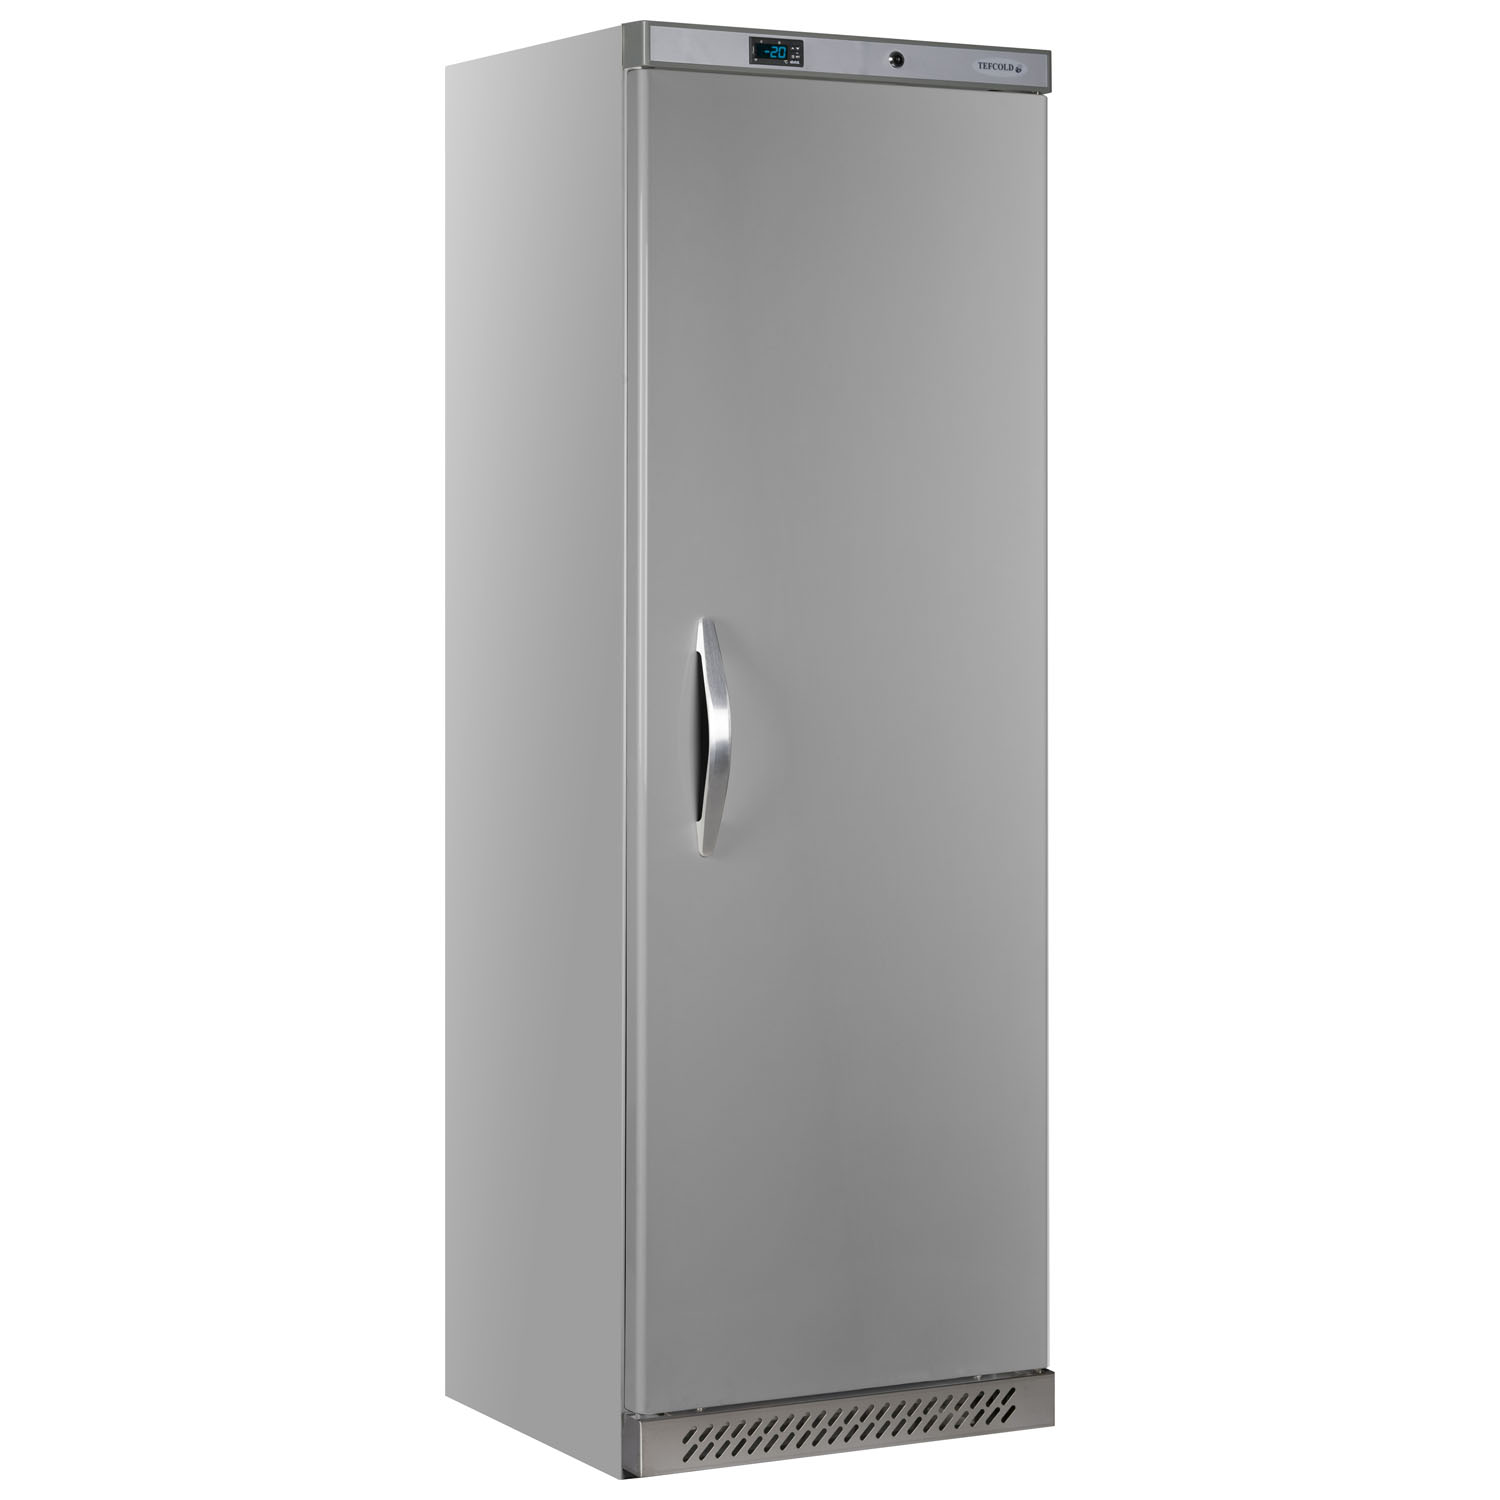 Tefcold UF400VSP Upright Storage Freezer Stainless Steel